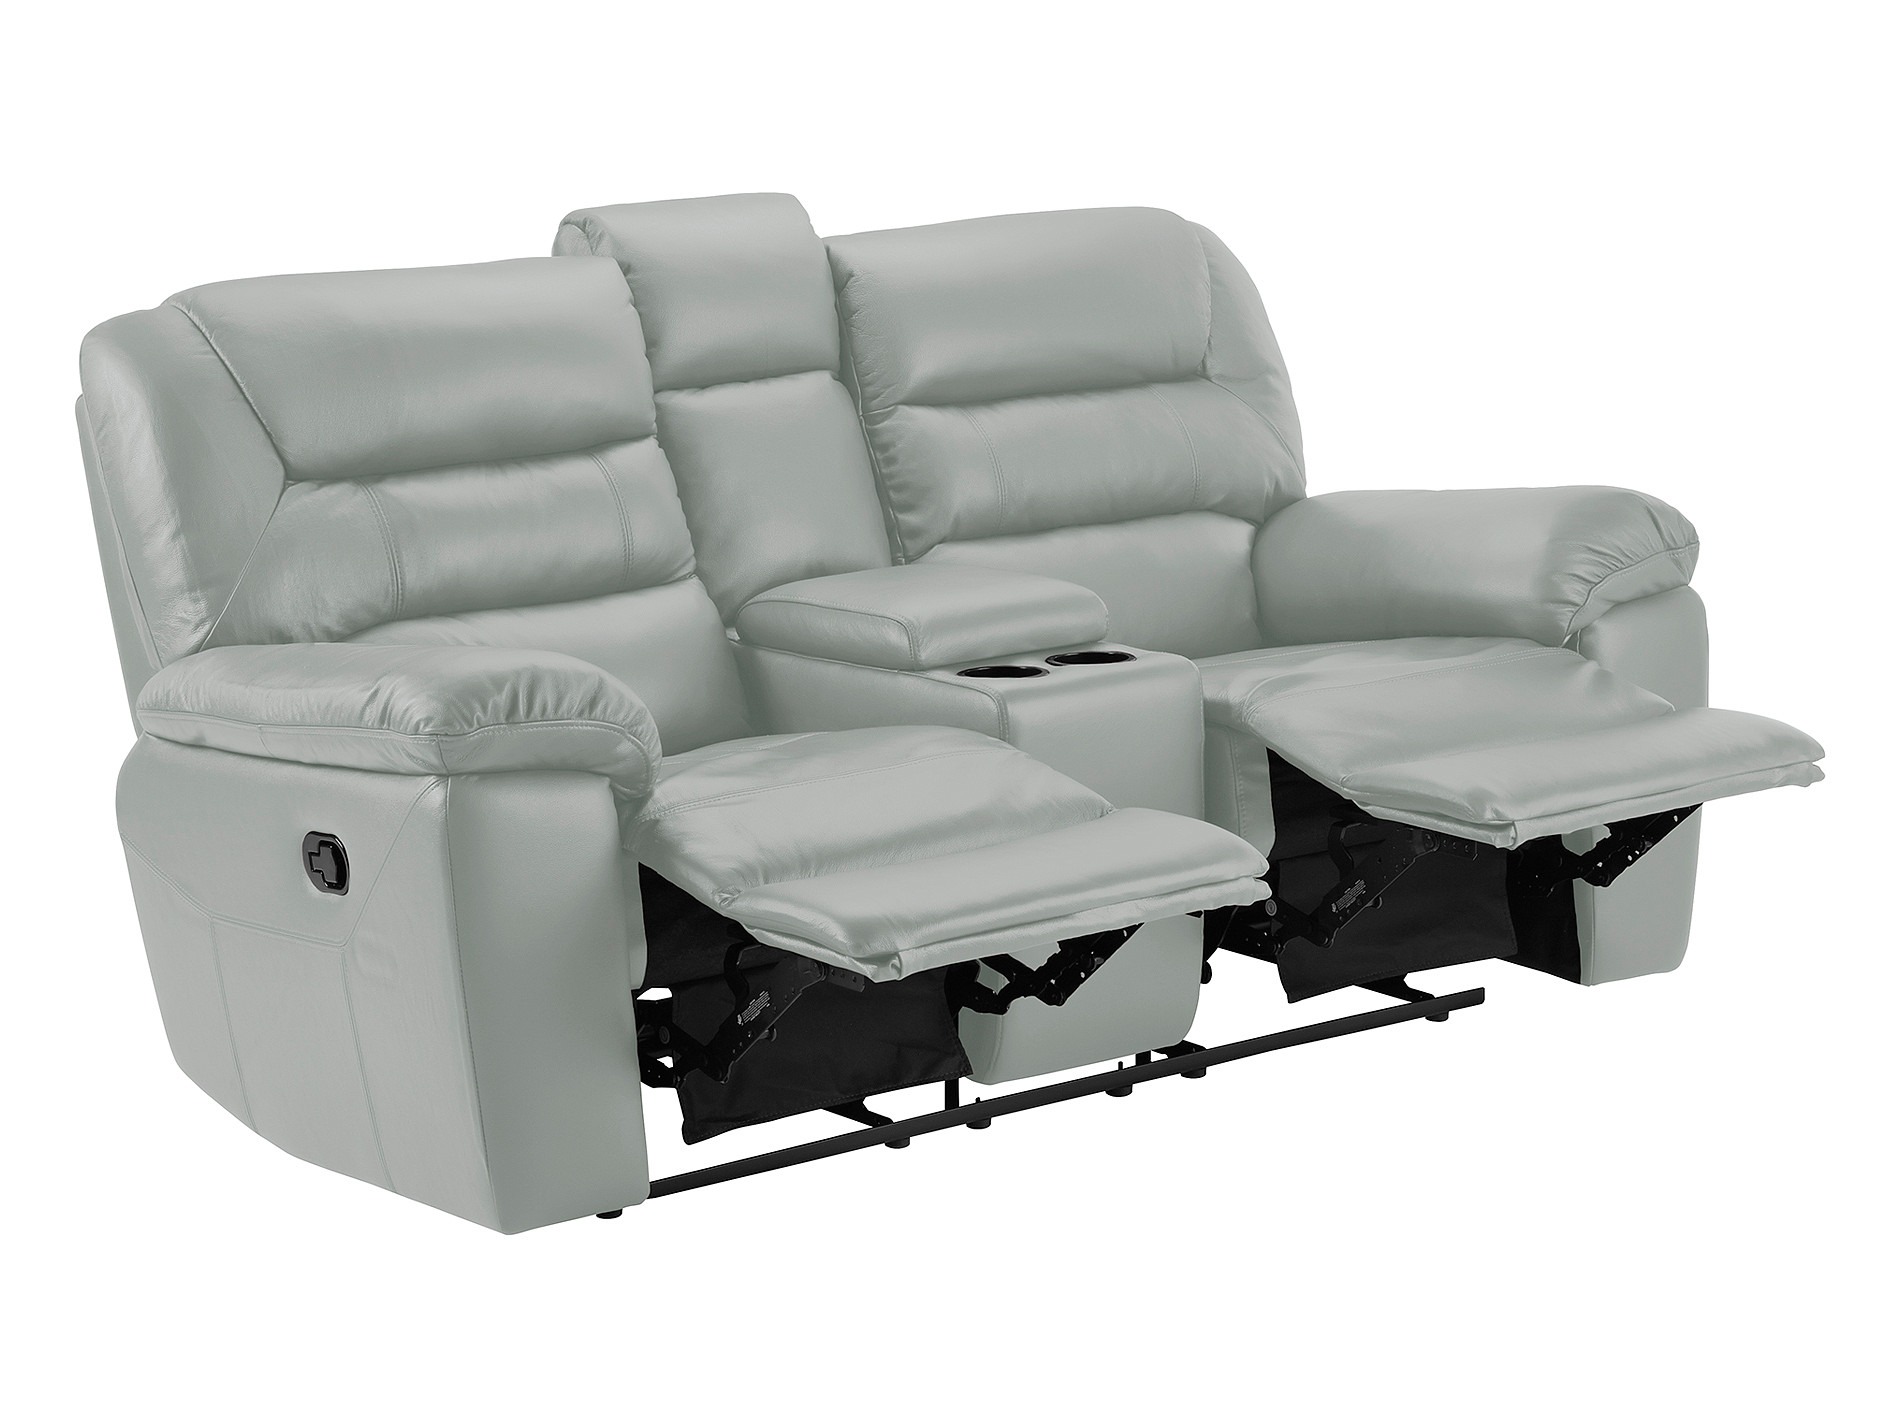 grey leather recliner chair uk high covers devon small sofa with manual recliners dark faux